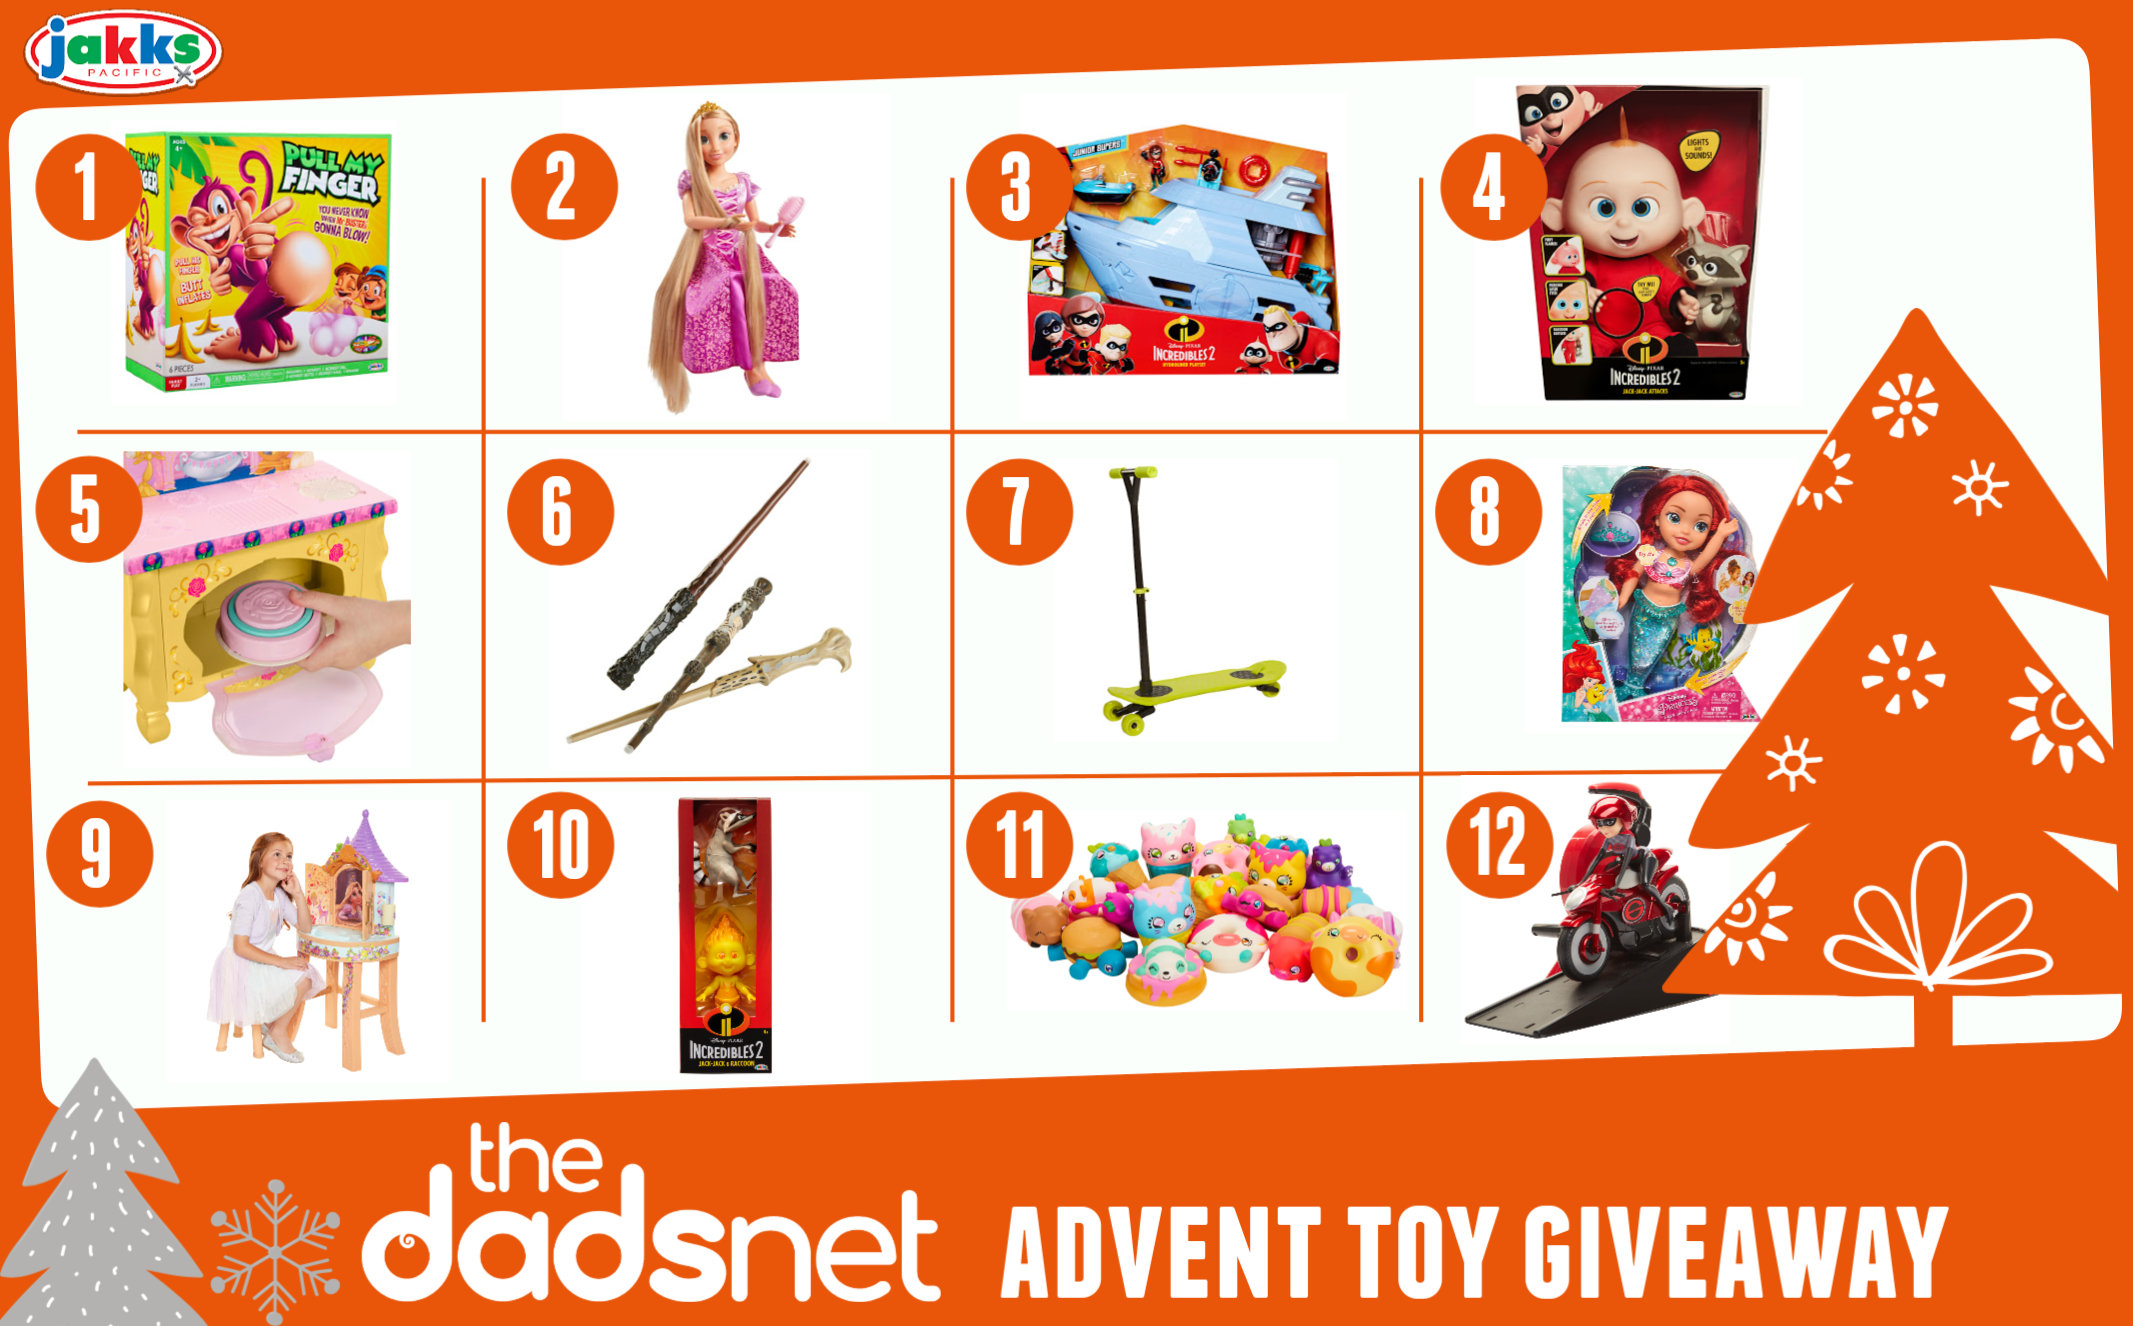 12 Toys of Christmas Advent Giveaway, Toy Giveaway Xmas 2%, daily-dad%